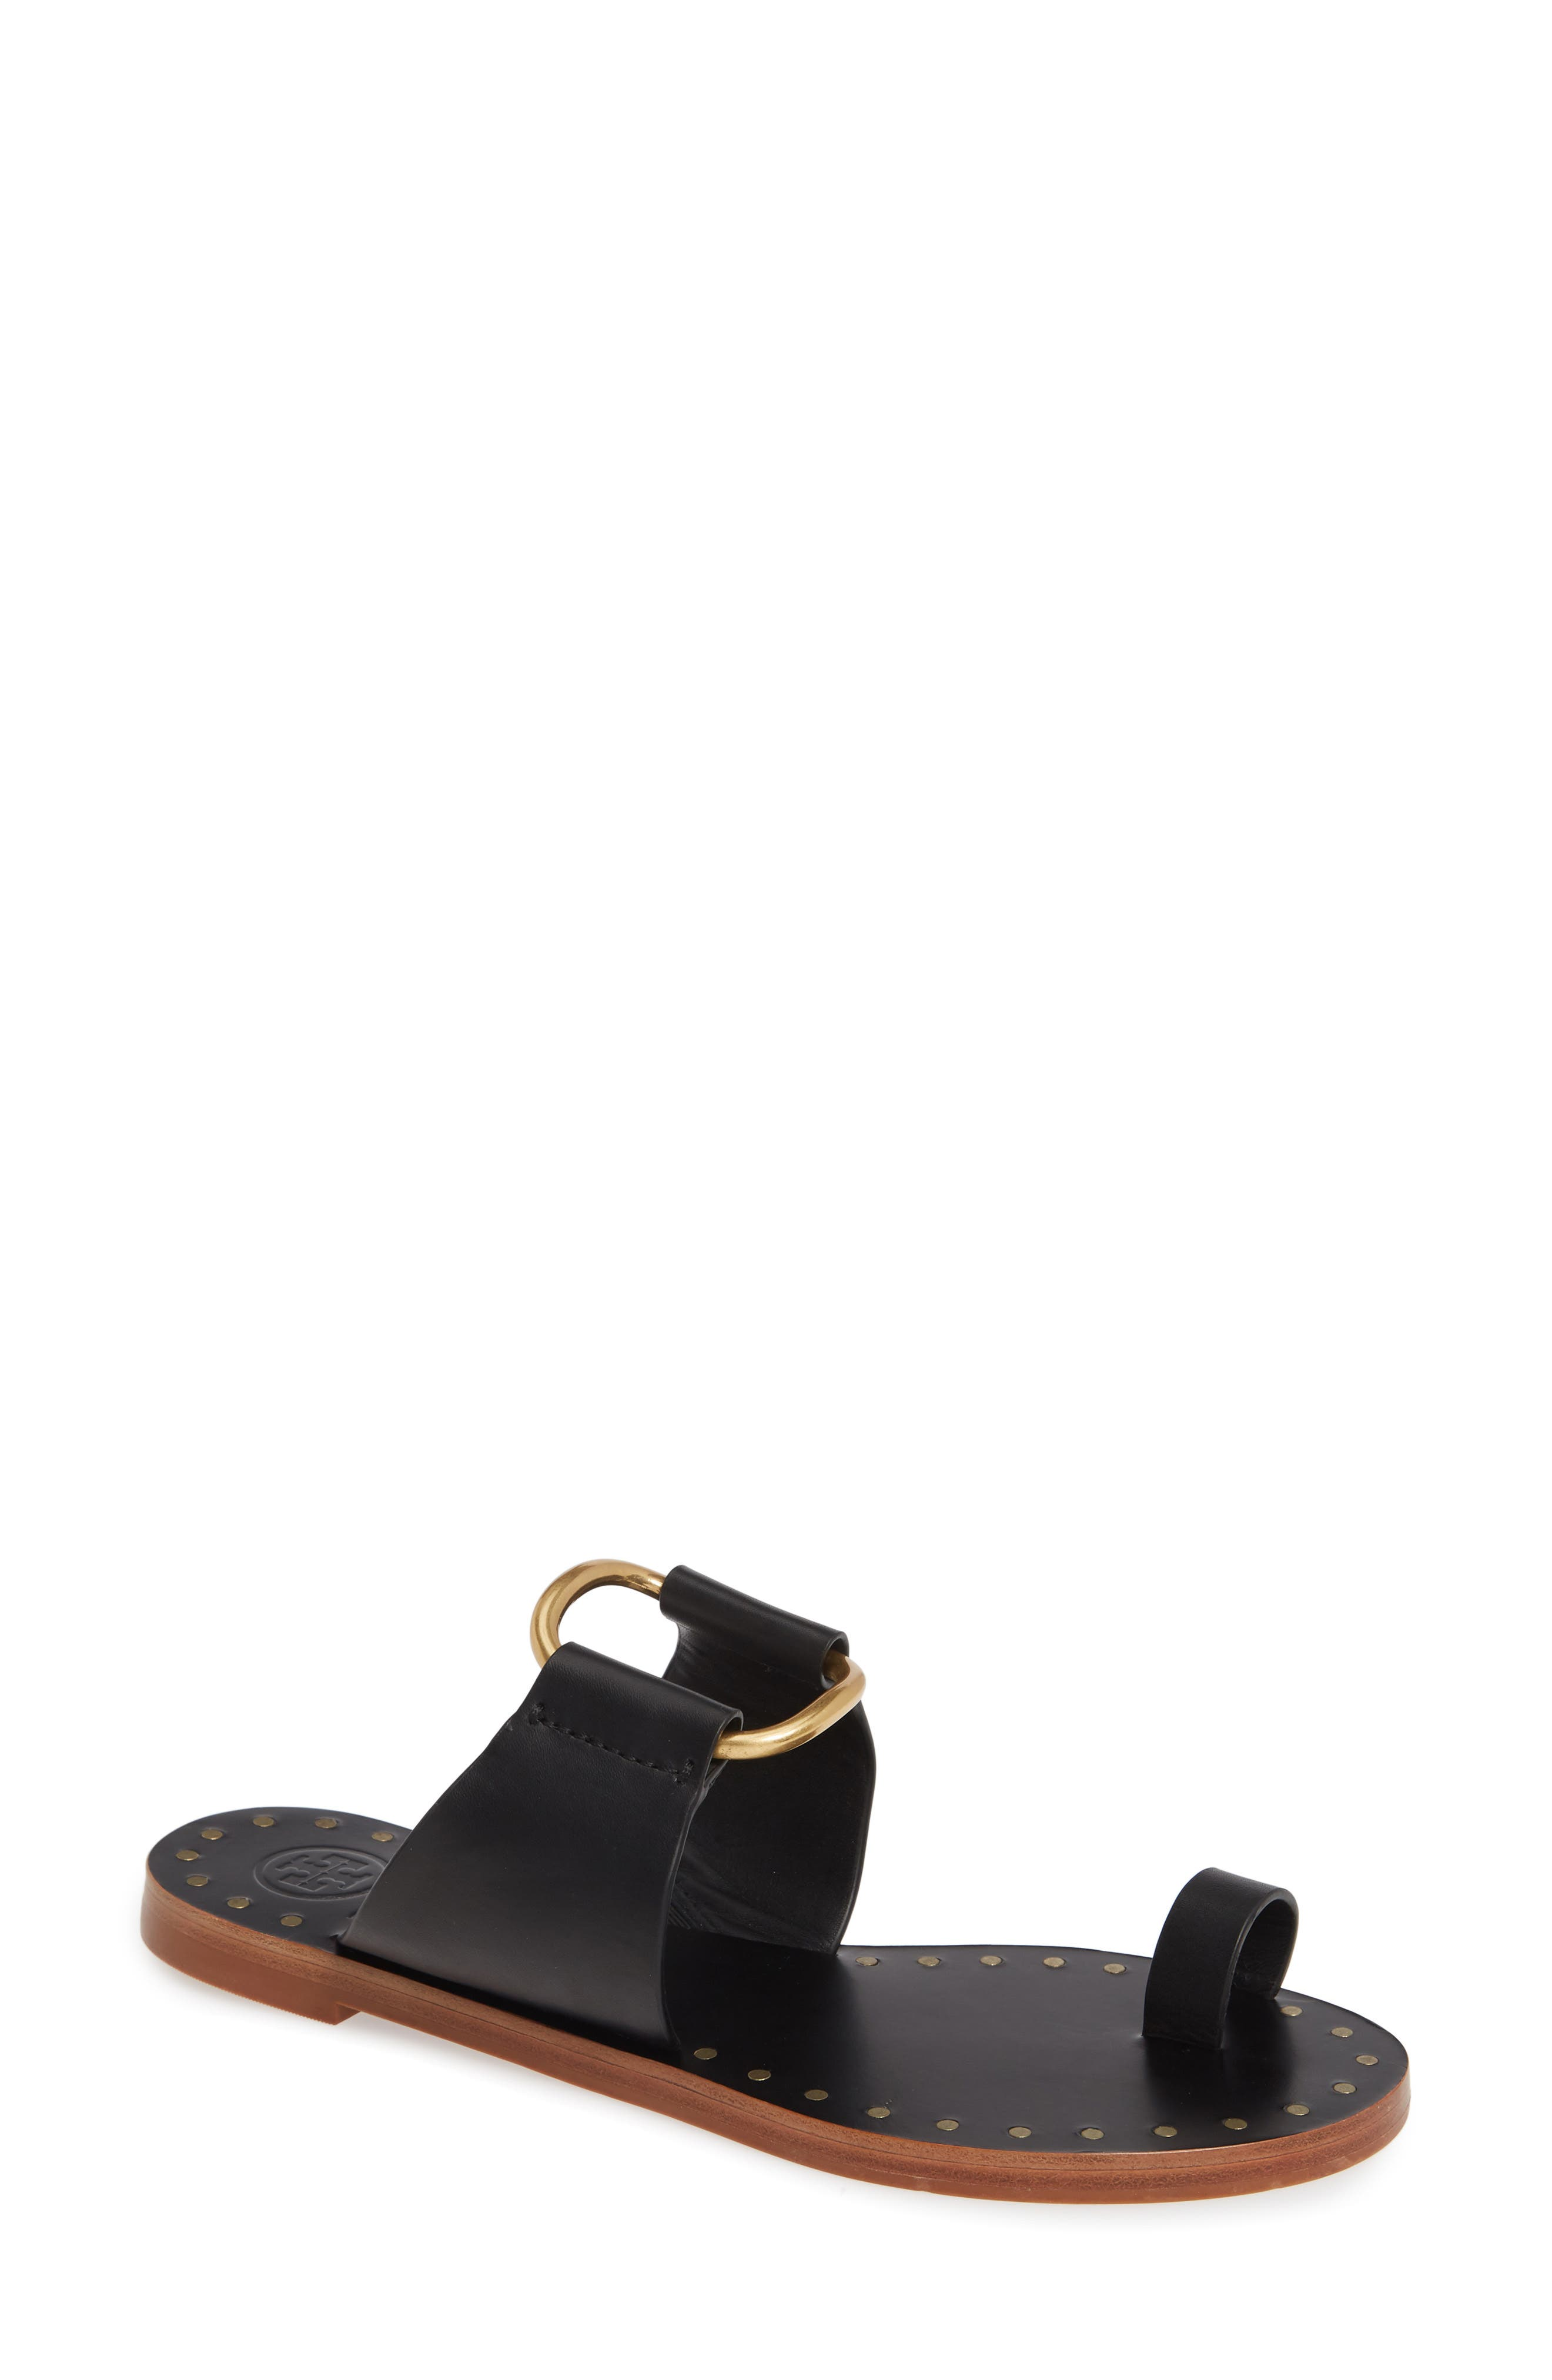 TORY BURCH Ravello Toe Ring Sandal, Main, color, PERFECT BLACK/ GOLD